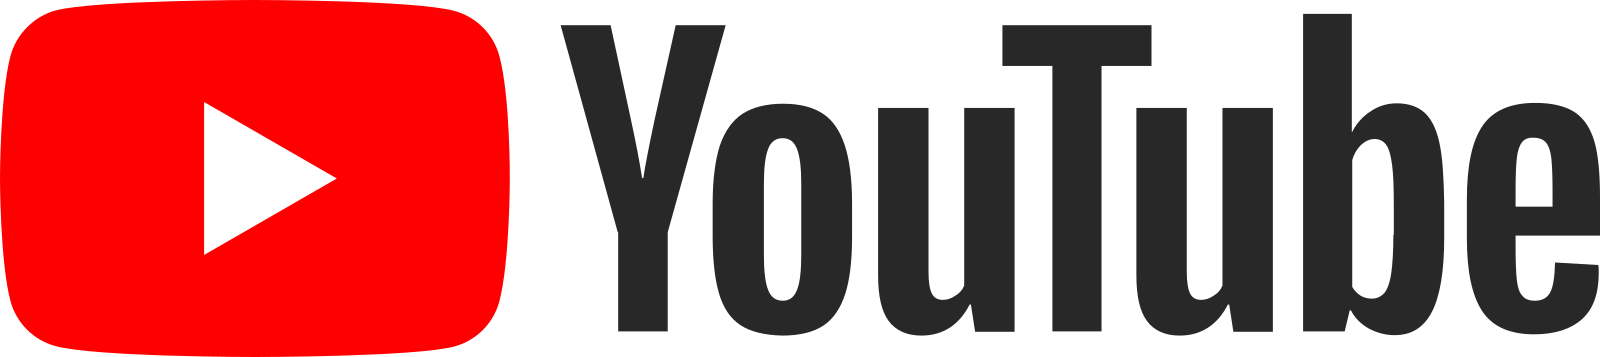 youtube logo 2 2 - Youtube Logo